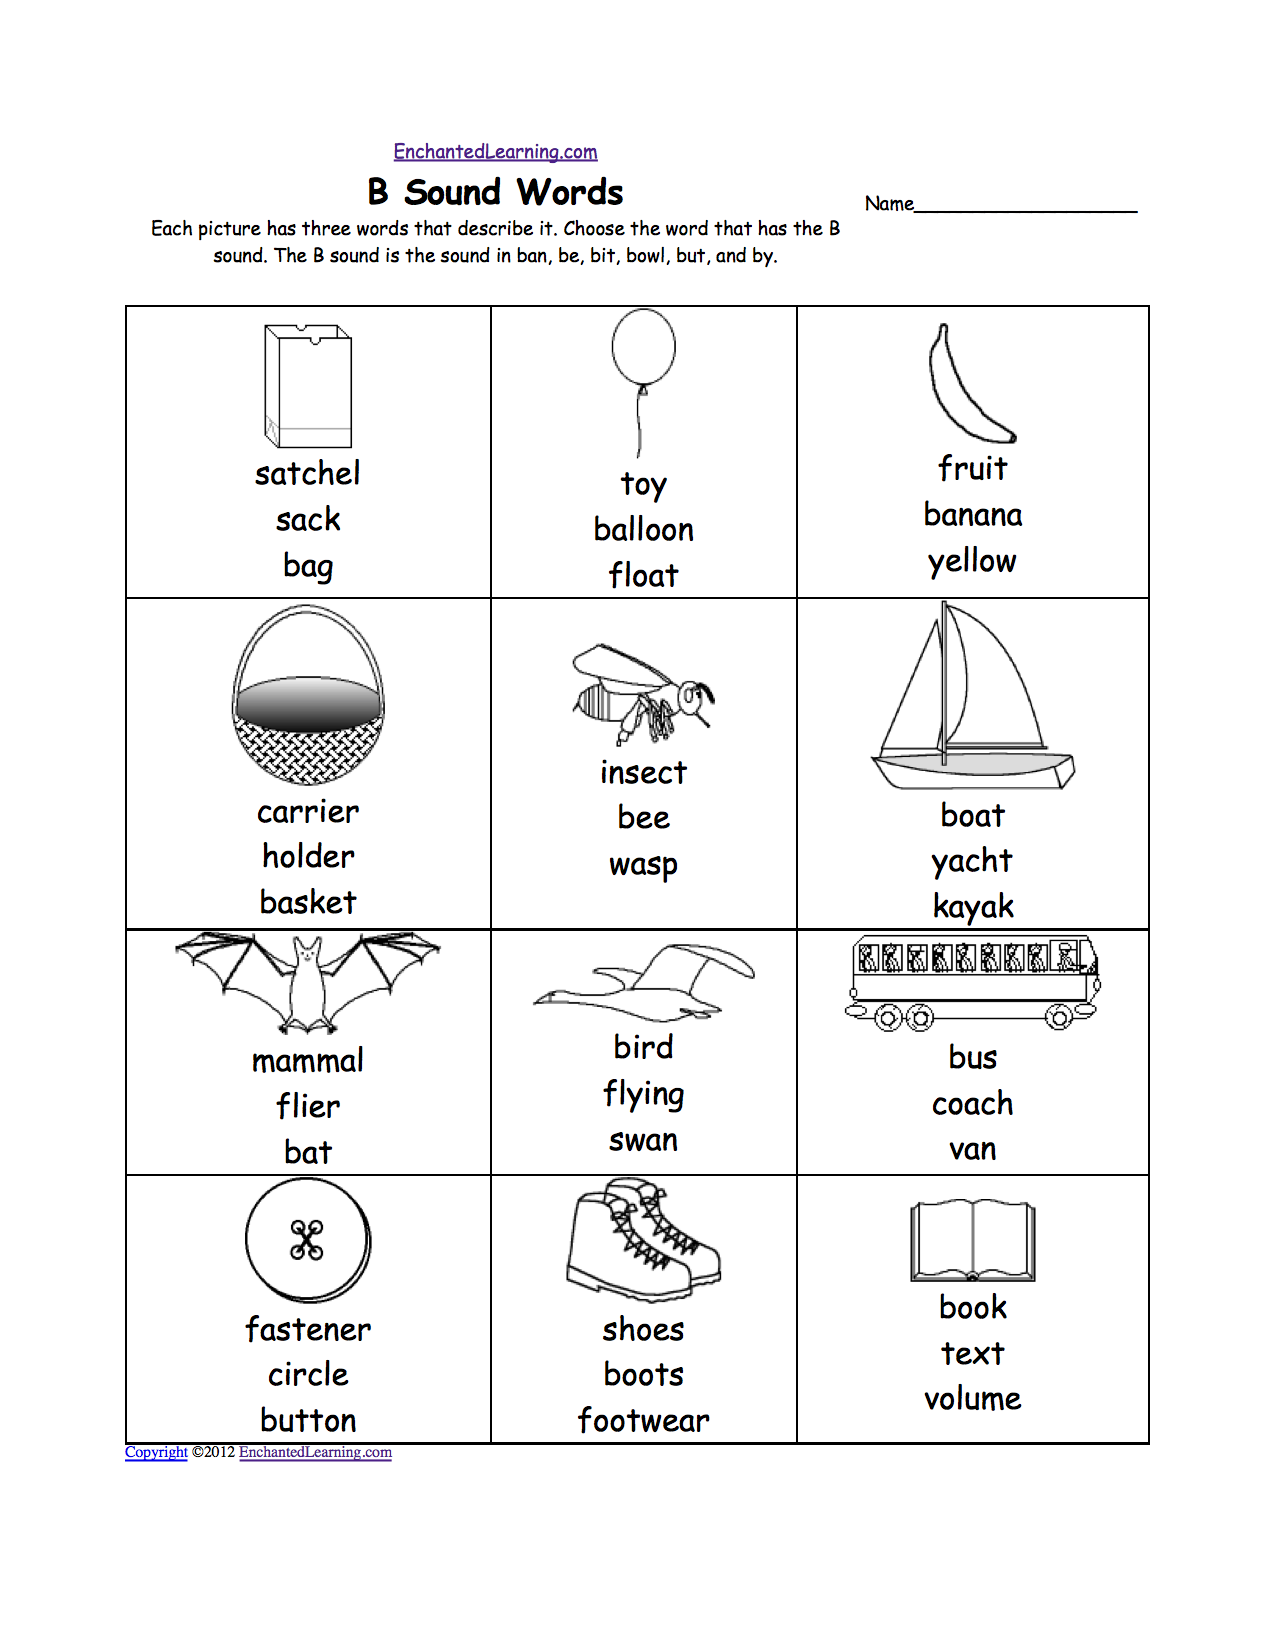 Proatmealus  Marvelous Phonics Worksheets Multiple Choice Worksheets To Print  With Licious Quotbquot Sound Phonics Worksheet Multiple Choice Each Picture Has Three Words That Describe It Choose The Word That Has A Quotbquot Sound The Quotbquot Sound Is The Sound  With Enchanting Unit Rates And Ratios Worksheets Also Double Consonants Worksheets In Addition If You Give A Moose A Muffin Worksheets And Social Studies Worksheets St Grade As Well As Reading Comprehension Worksheets For Highschool Students Free Additionally Matching Preschool Worksheets From Enchantedlearningcom With Proatmealus  Licious Phonics Worksheets Multiple Choice Worksheets To Print  With Enchanting Quotbquot Sound Phonics Worksheet Multiple Choice Each Picture Has Three Words That Describe It Choose The Word That Has A Quotbquot Sound The Quotbquot Sound Is The Sound  And Marvelous Unit Rates And Ratios Worksheets Also Double Consonants Worksheets In Addition If You Give A Moose A Muffin Worksheets From Enchantedlearningcom